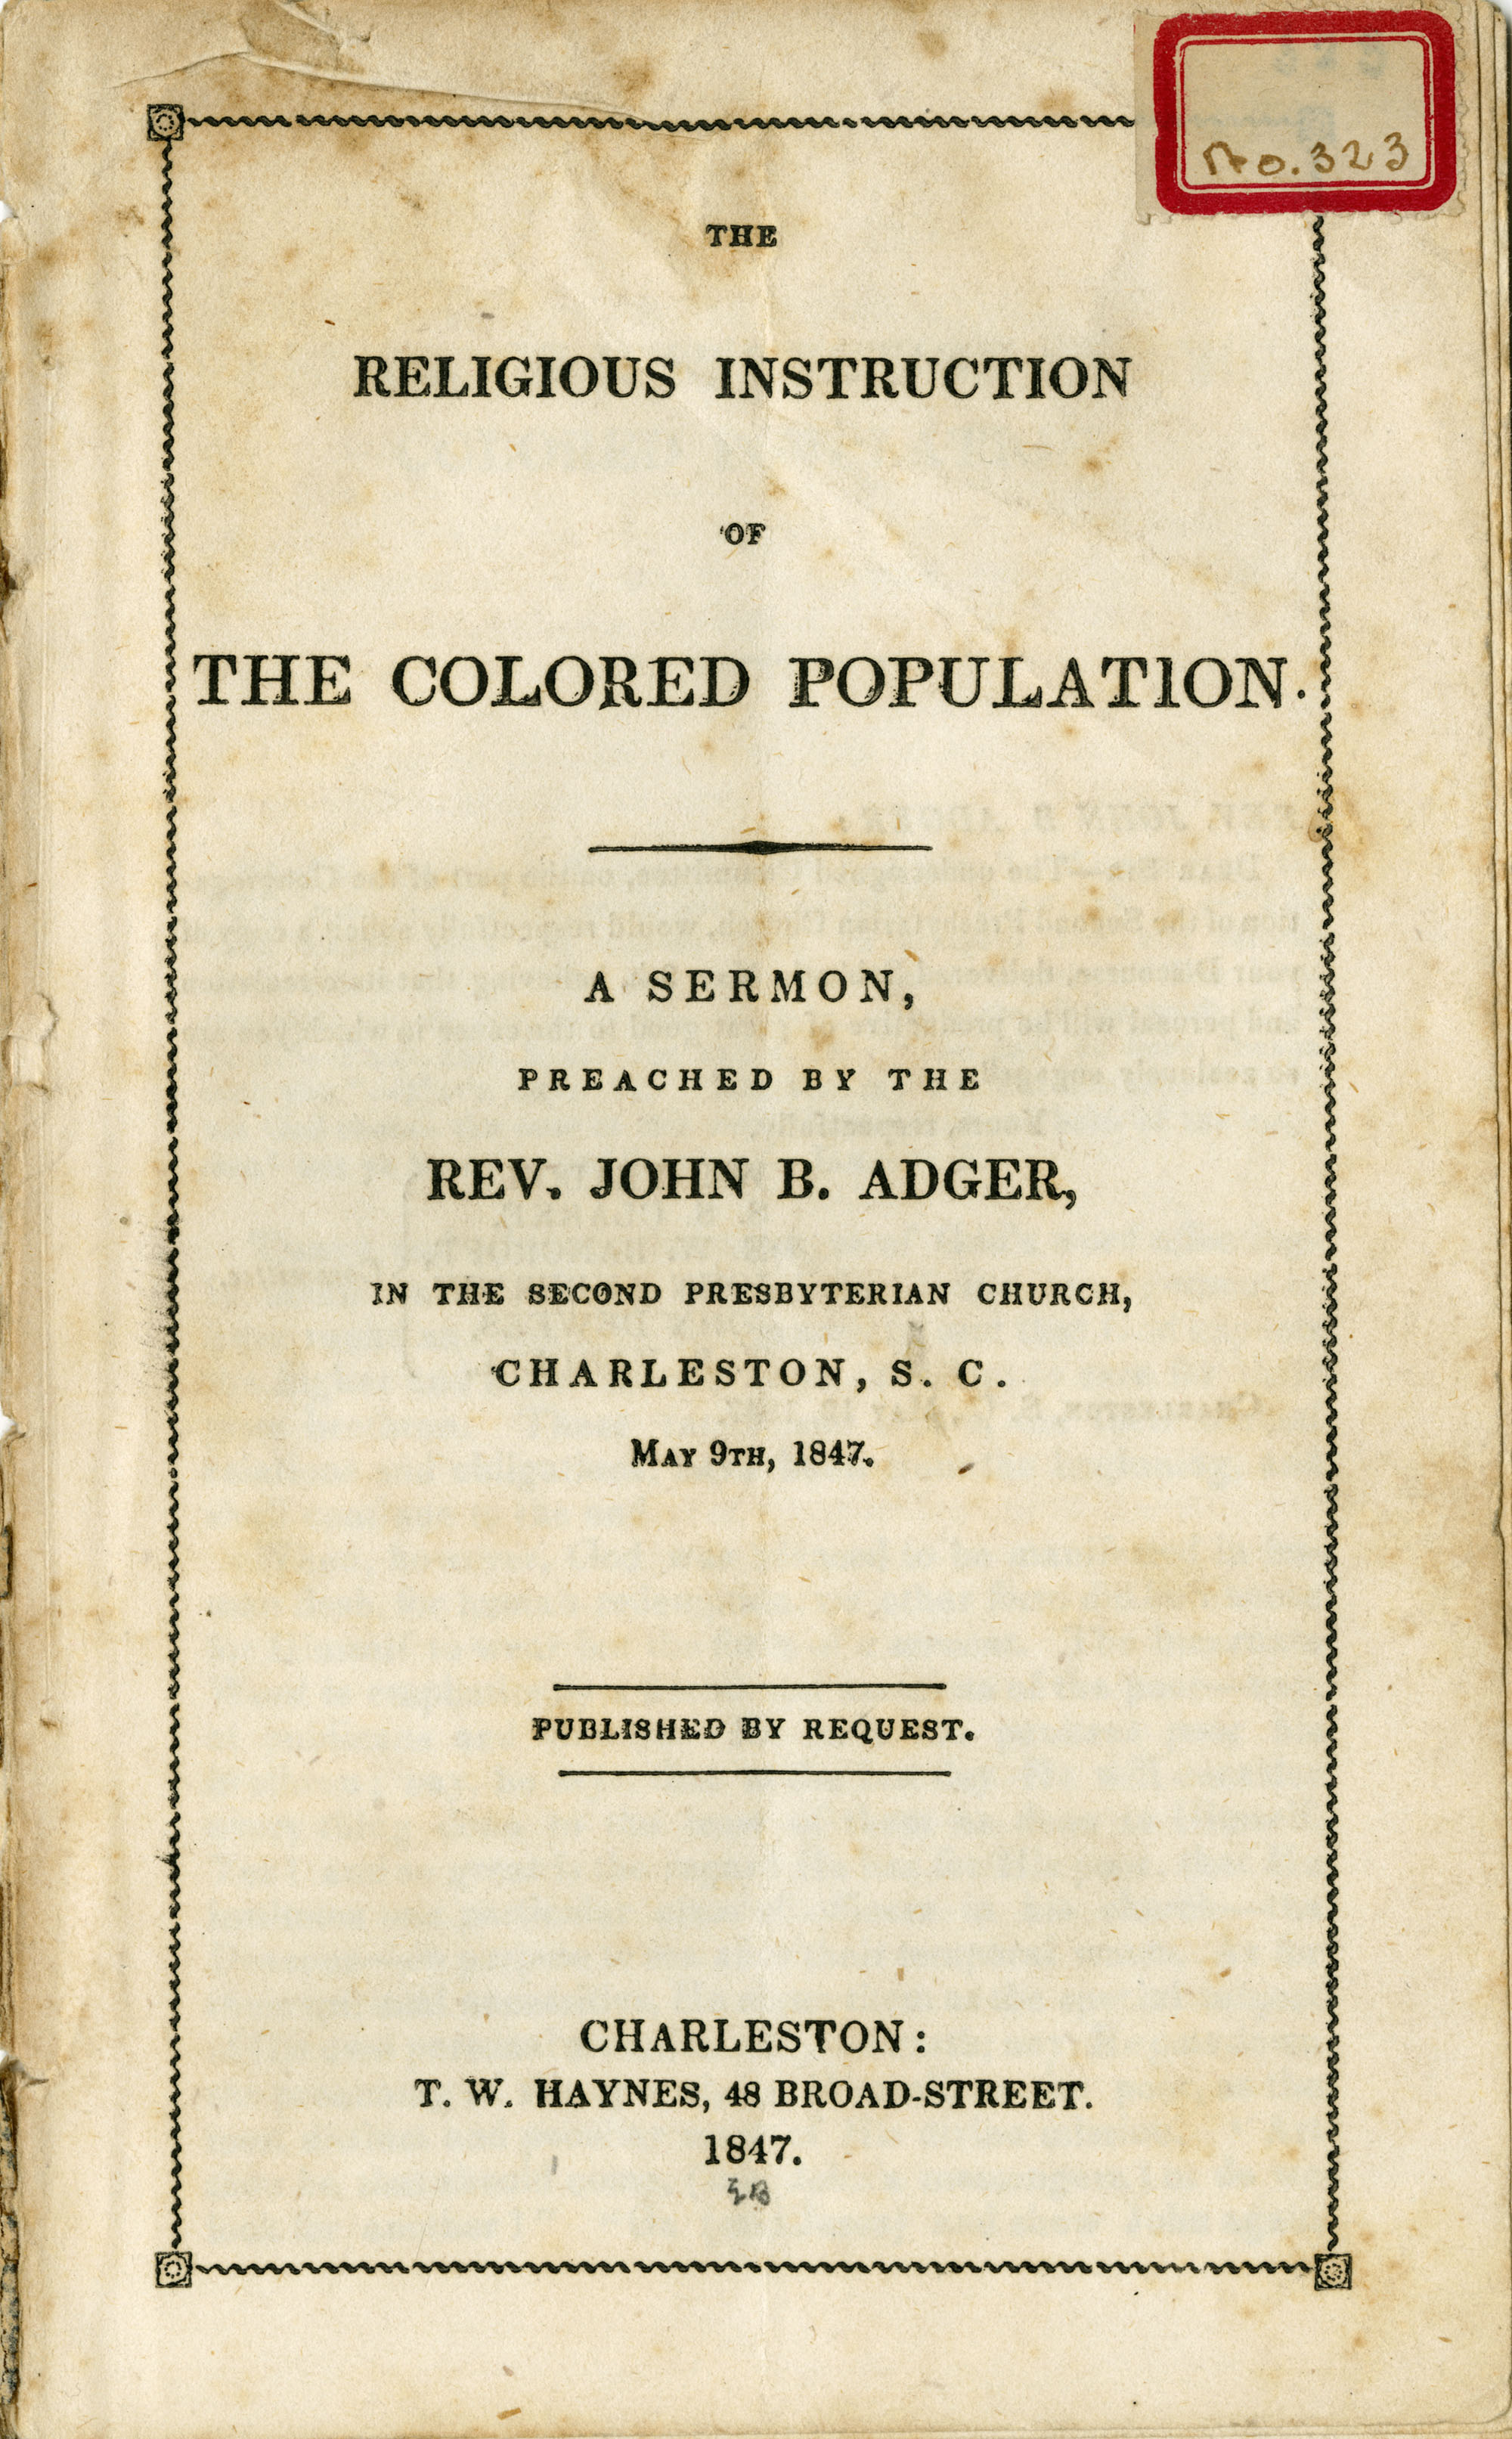 Religious Instruction of the Colored Population. A Sermon Preached by the Rev. John B. Adger, In The Second Presbyterian Church, Charleston, S.C. May 9th, 1847.